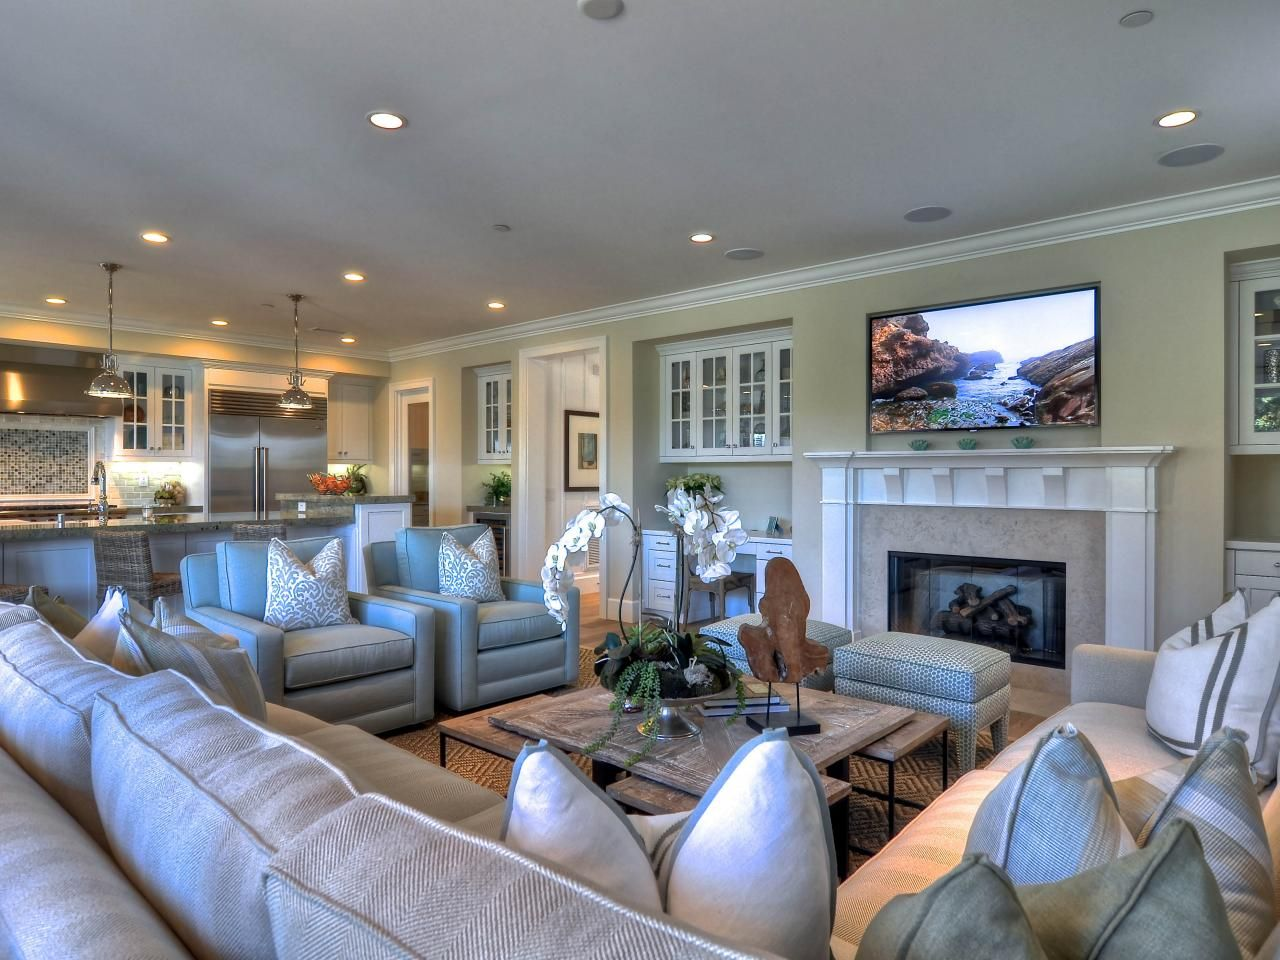 Coastal Decor Is Found In The Details In This Spacious